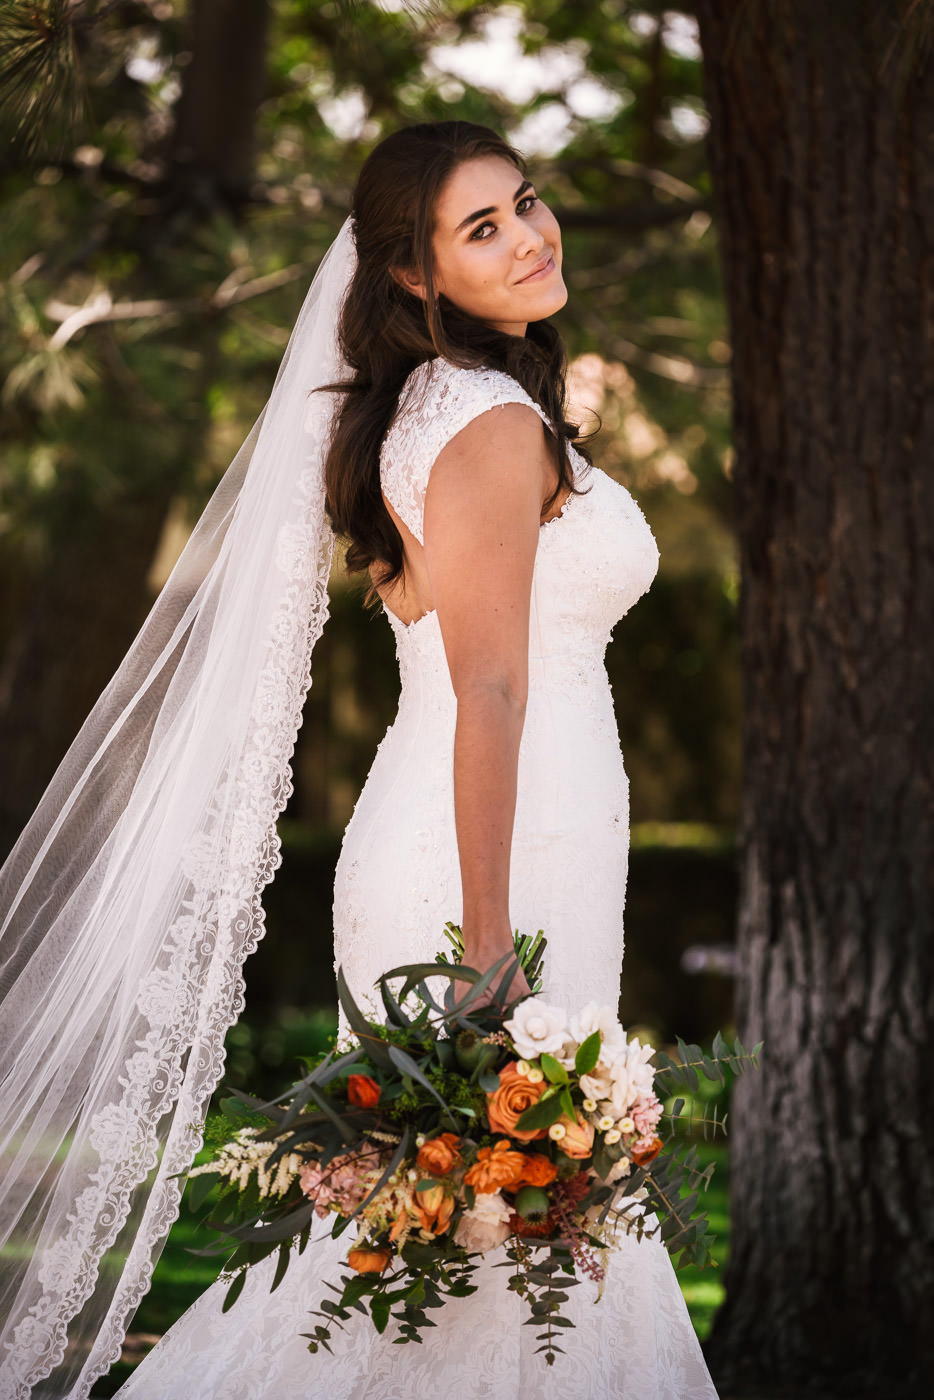 San Diego wedding photographer creates a stunning portrait of a bride.